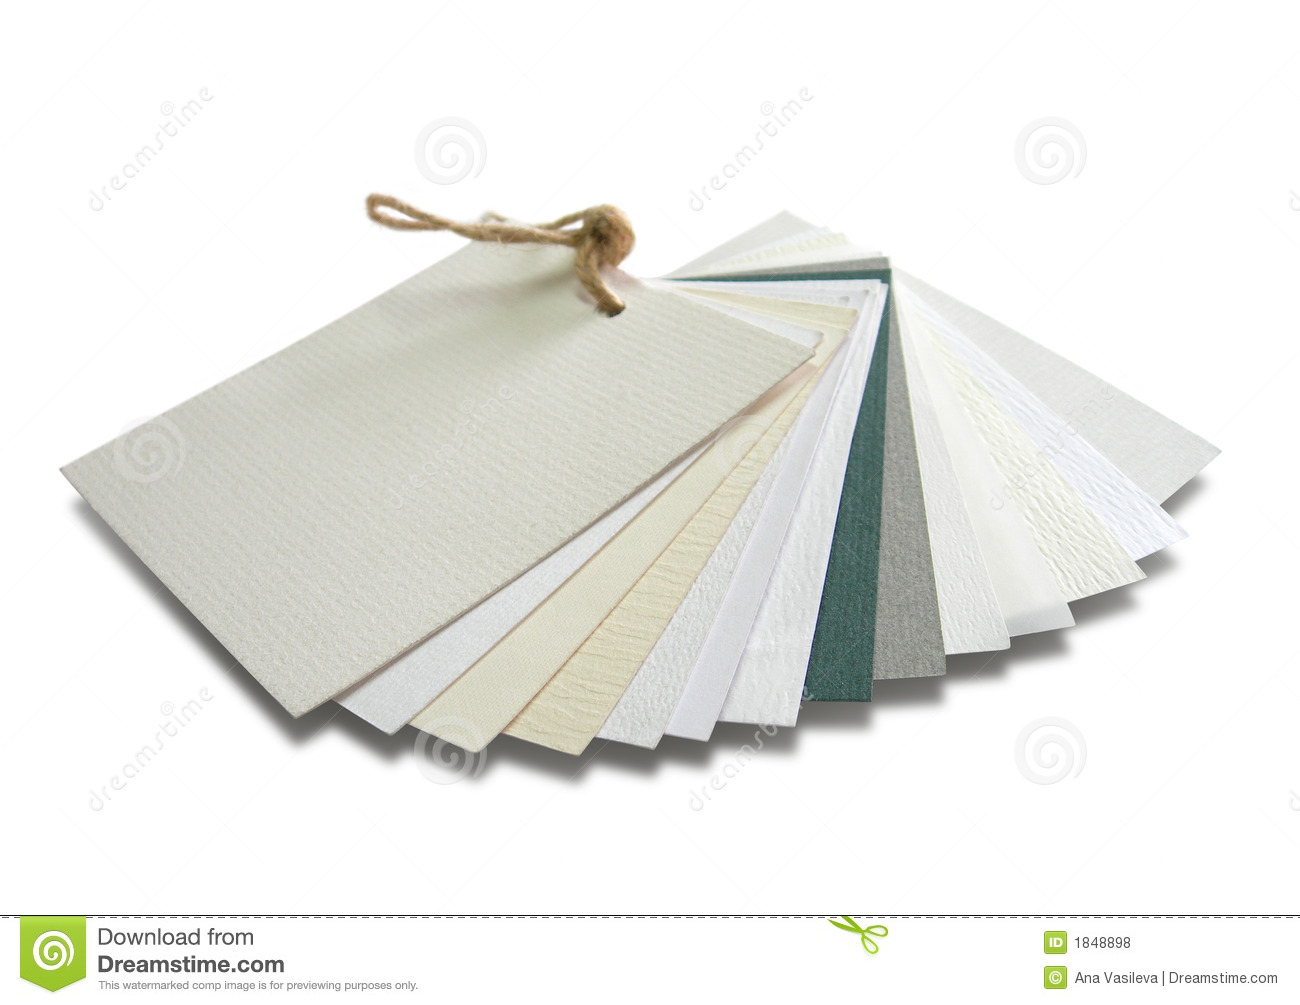 French paper samples